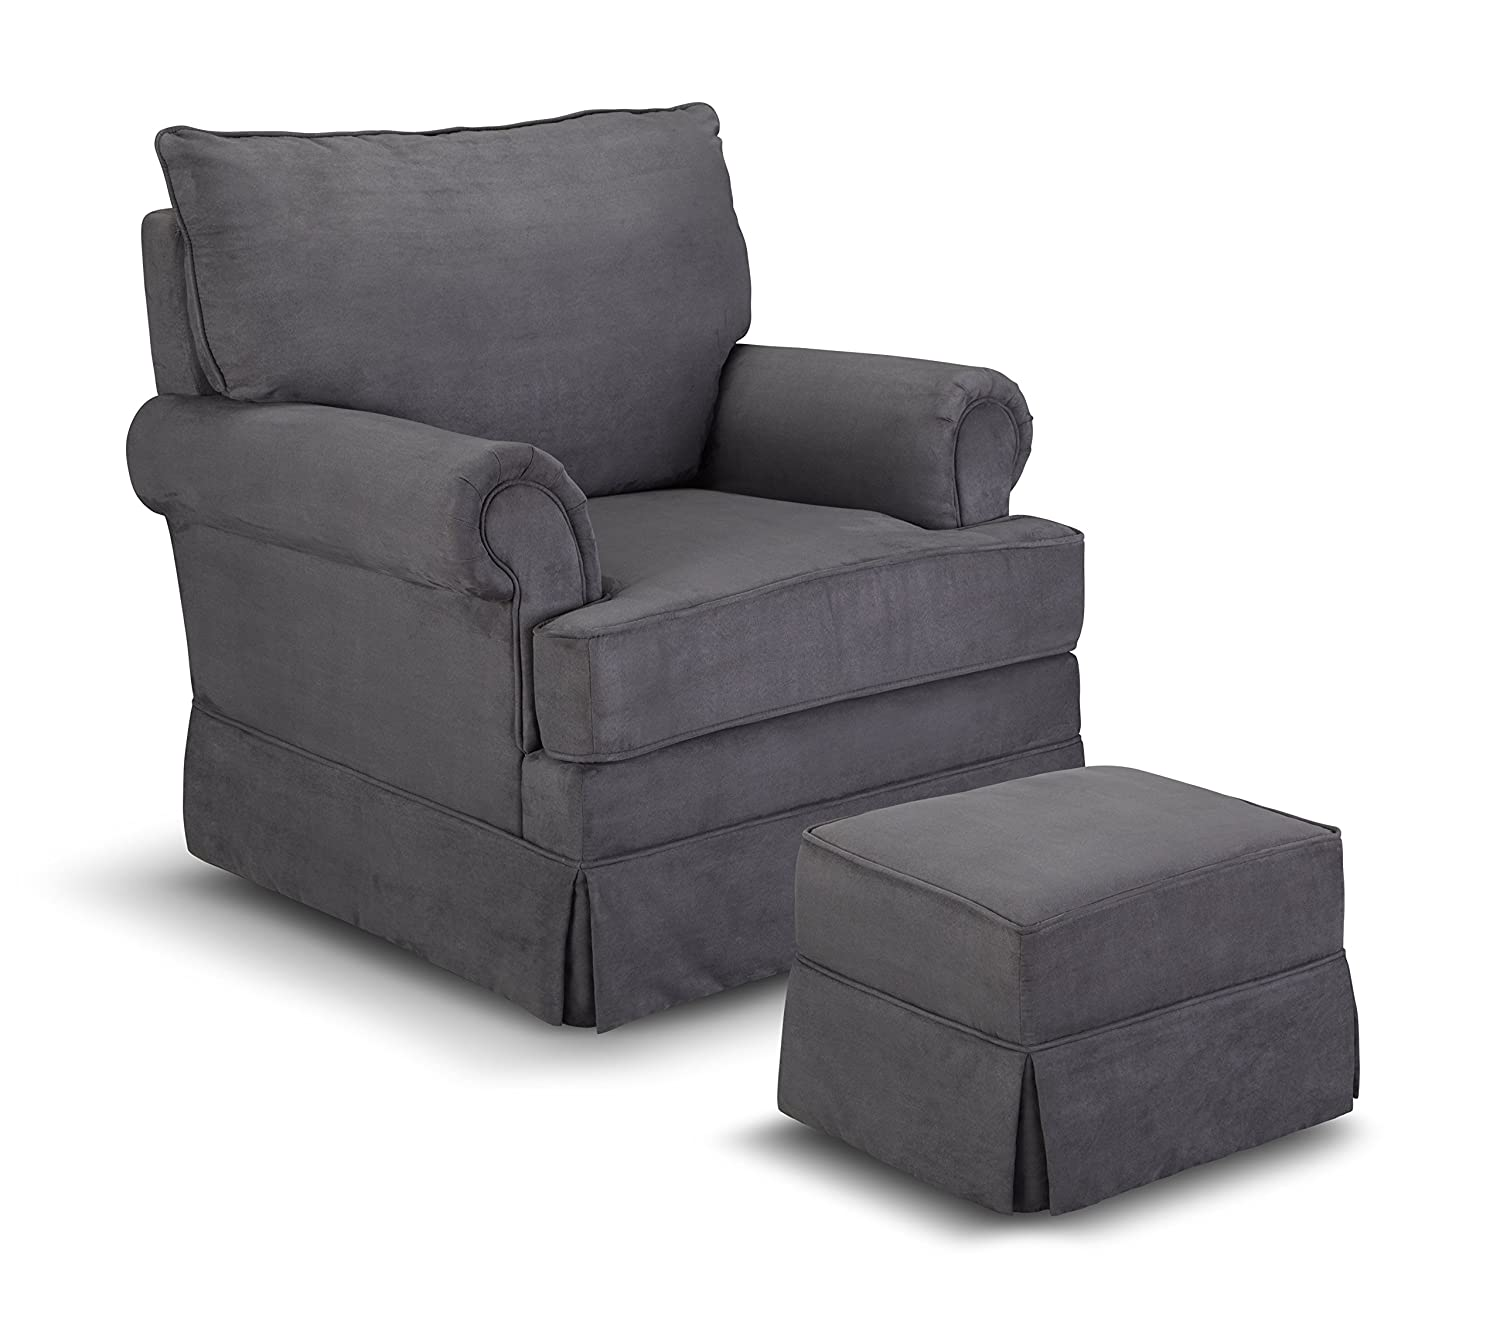 Amazon.com: Thomasville Kids Grand Royale Upholstered Swivel Glider And  Ottoman, Gray: Baby